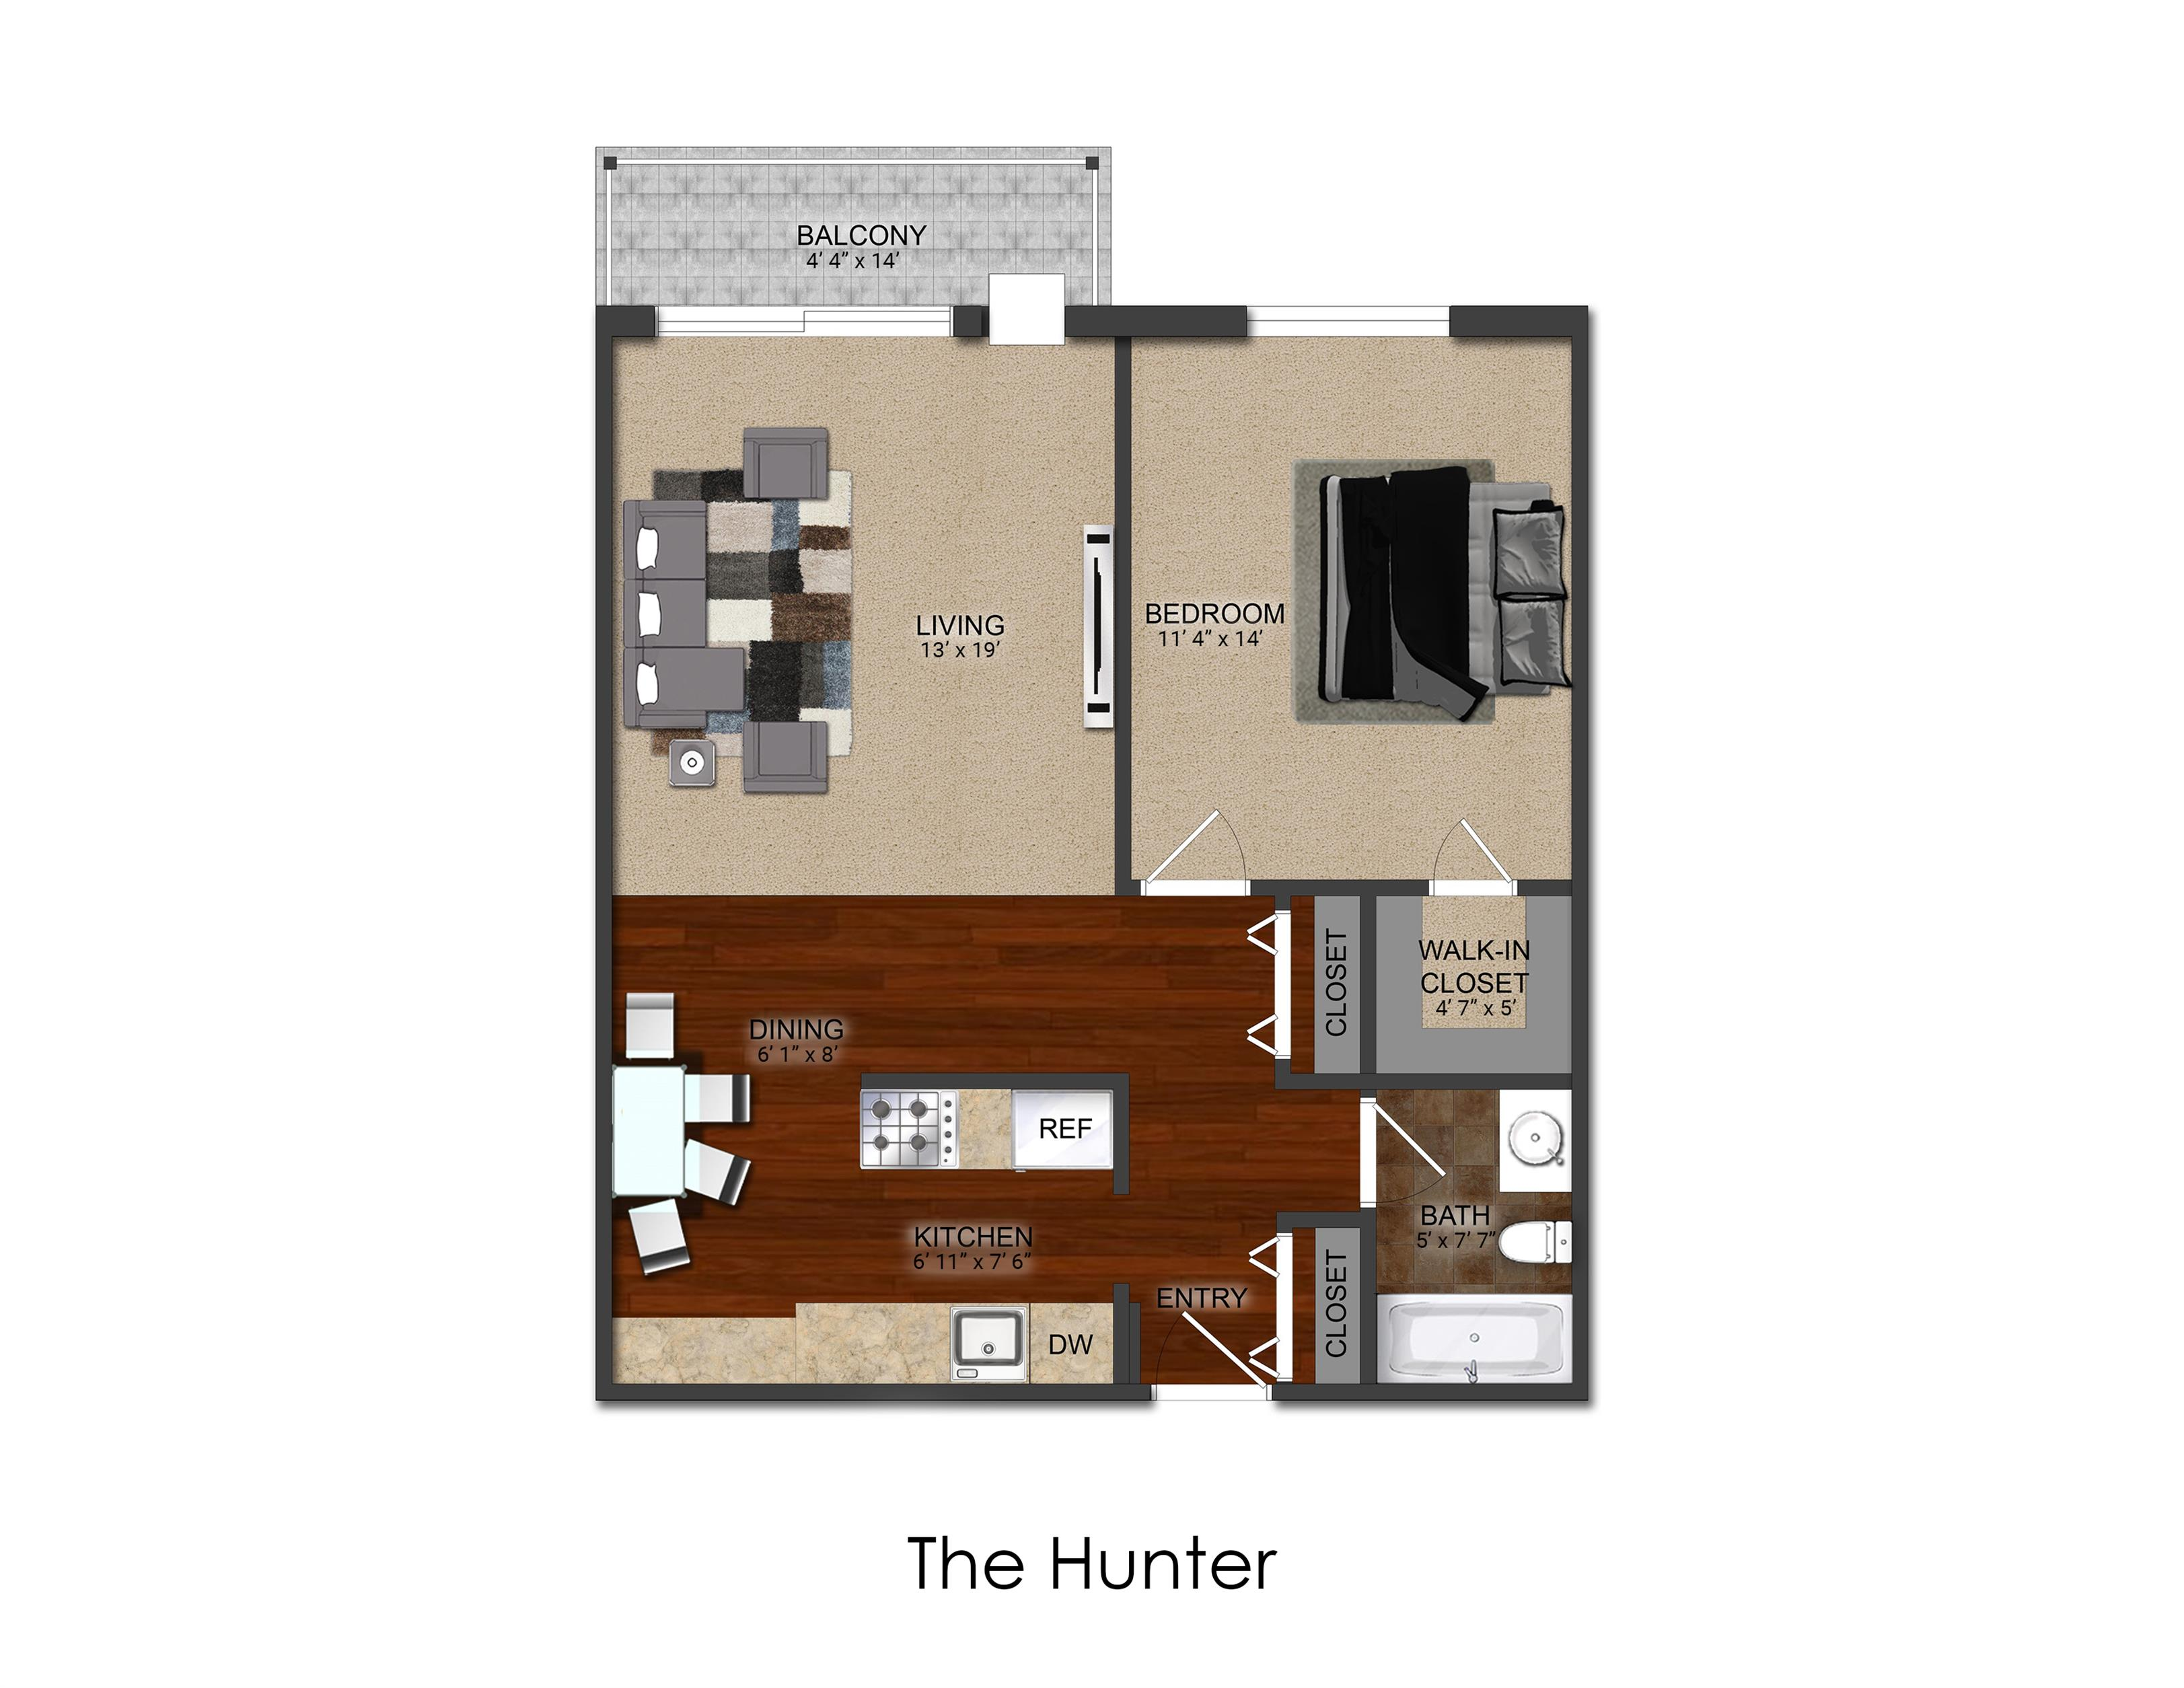 Image of 3010 Sumter Ave N, # 109